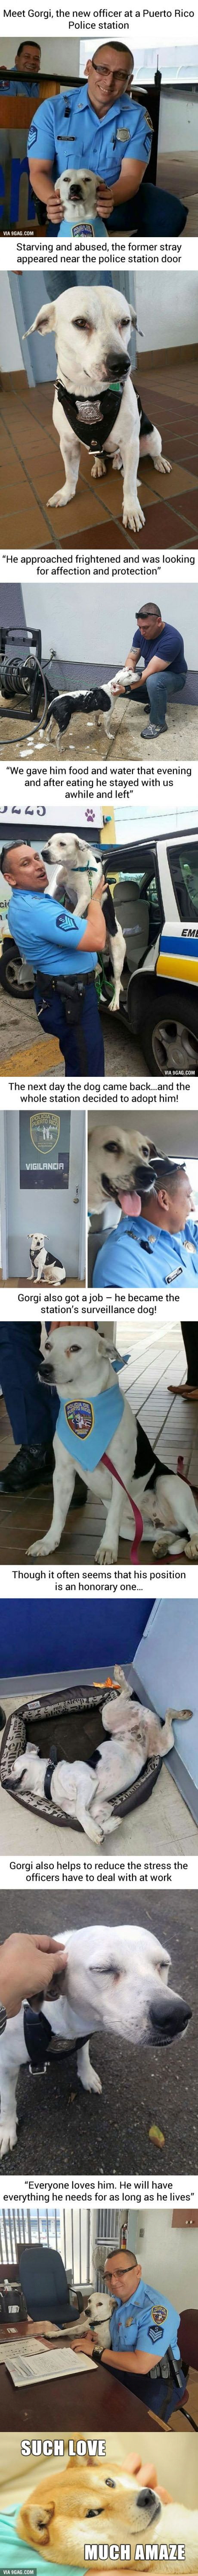 Stray Dog Walks Into Police Station, Gets A Job